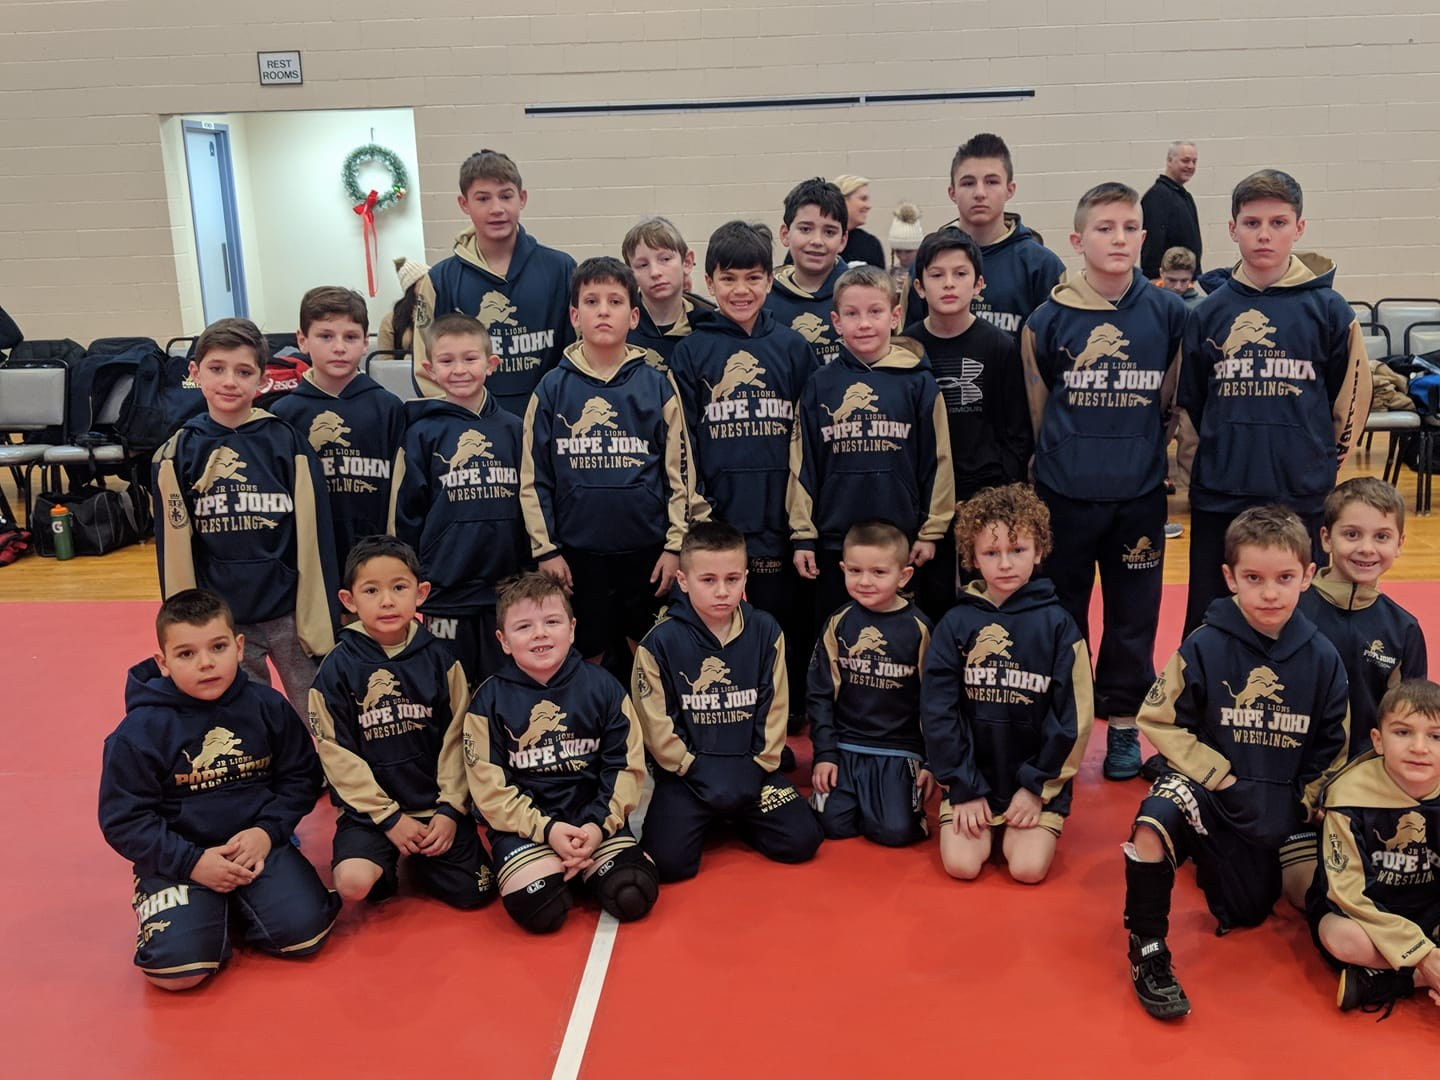 Jr Lions wrestling team photo